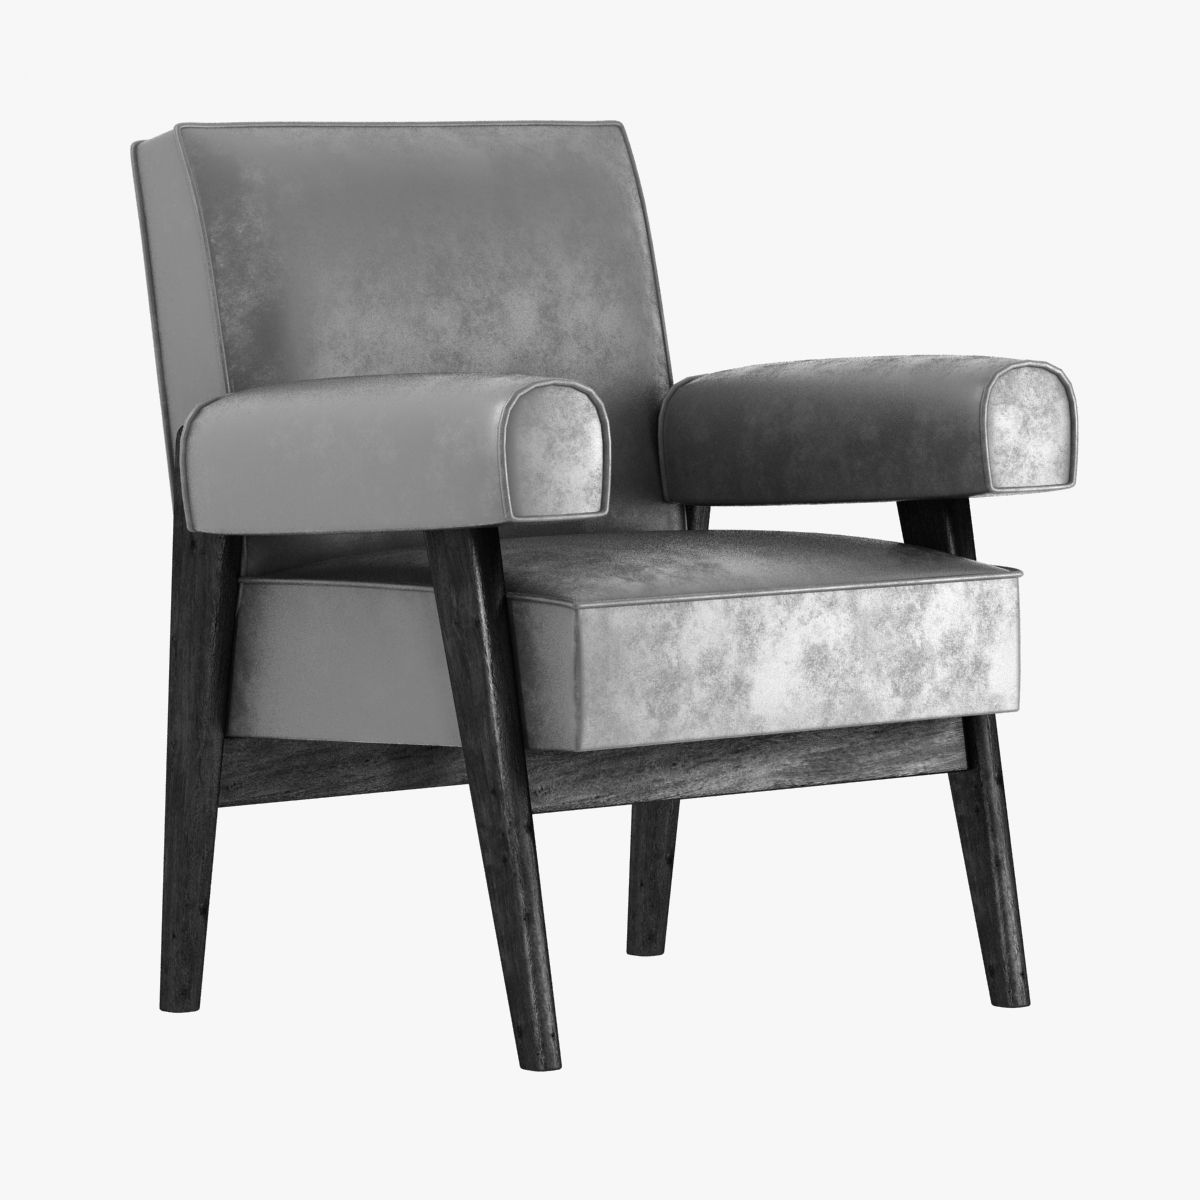 le corbusier and pierre jeanneret armchair 3d model max obj 3ds fbx mtl 1